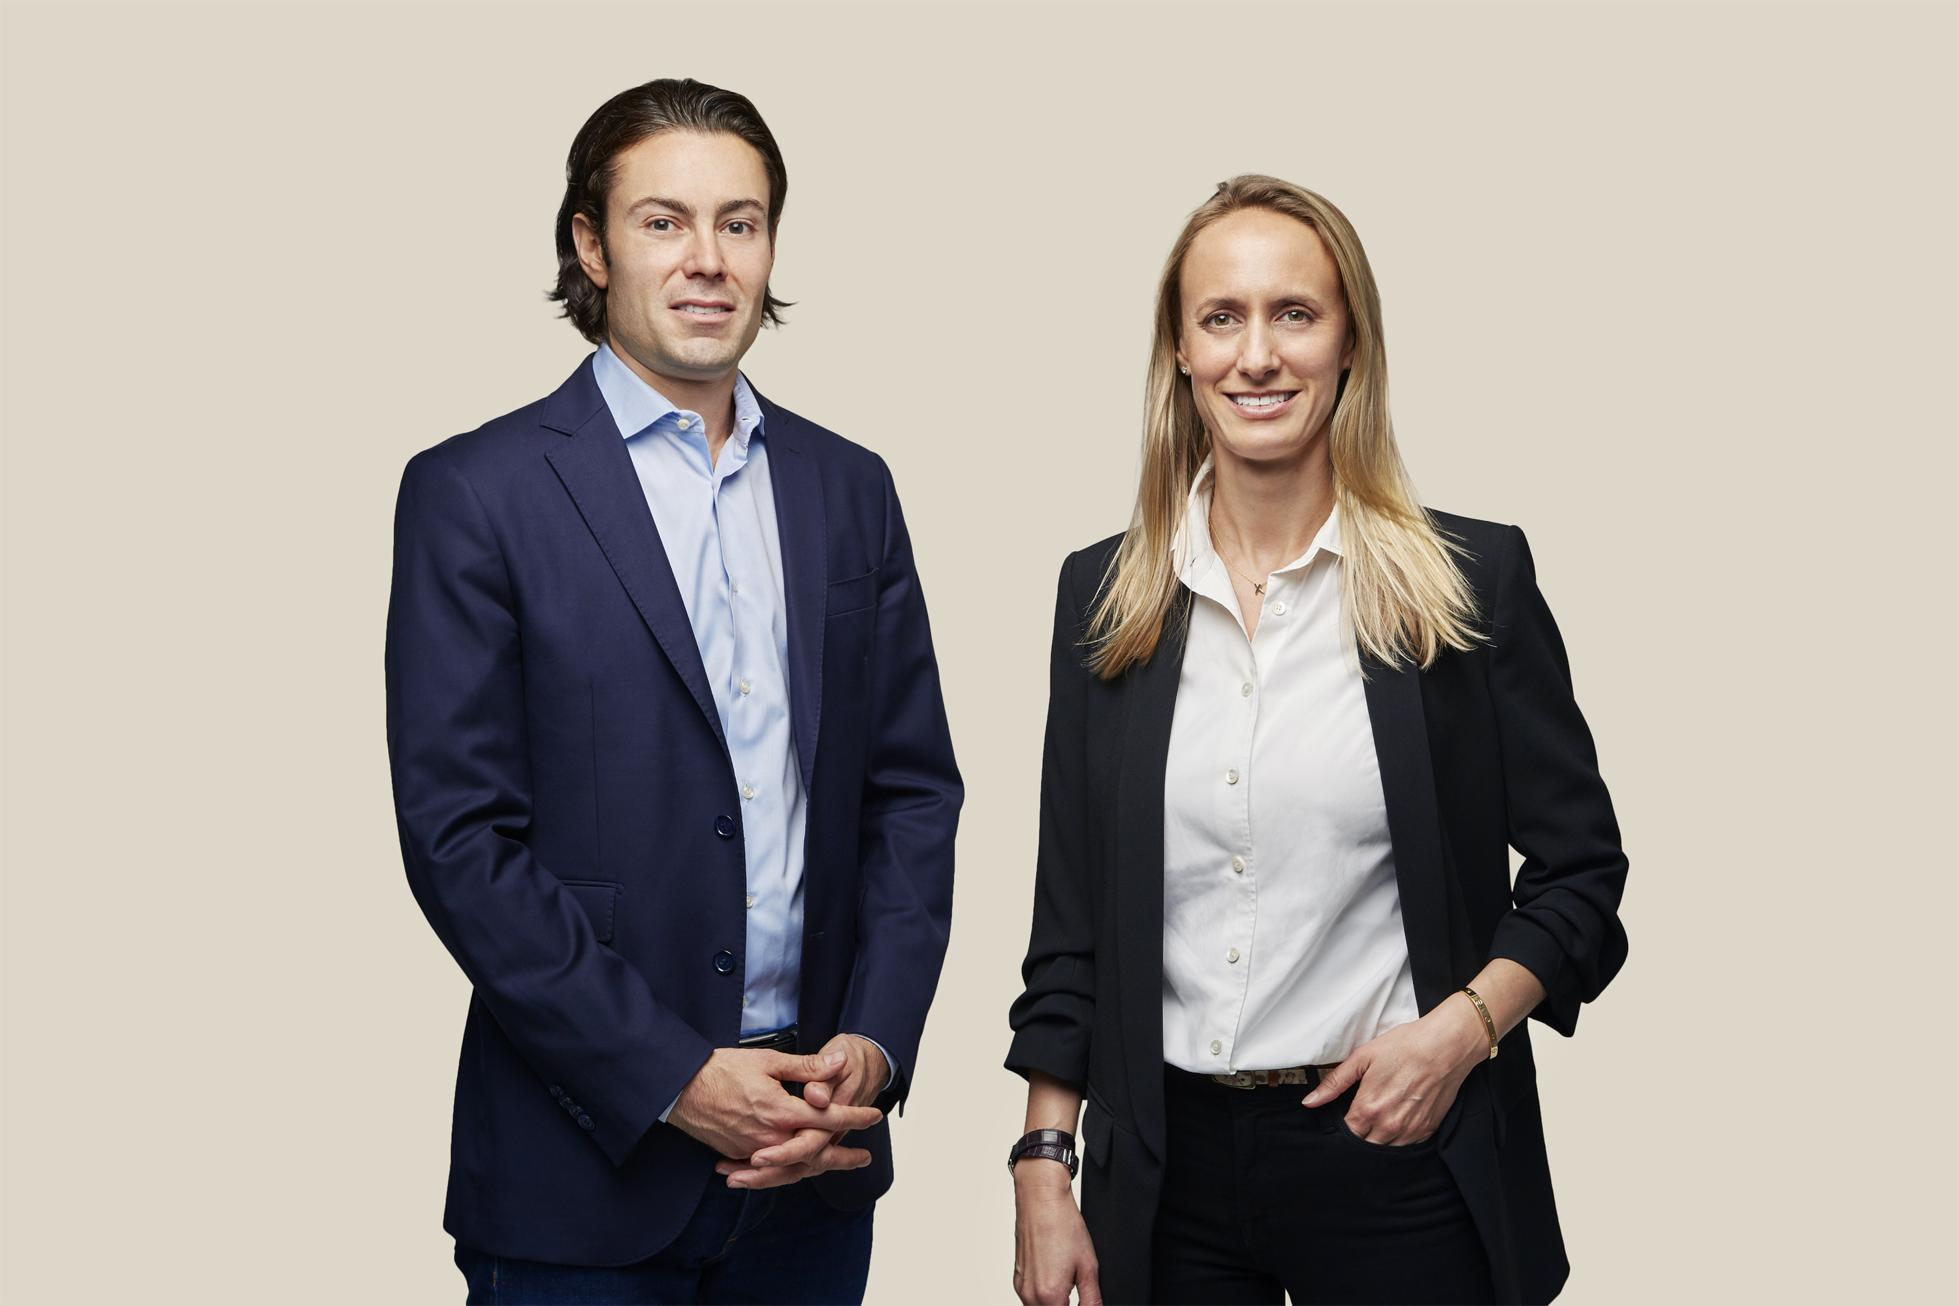 Harness Wealth founders David Snider and Katie Prentke English serve as CEO and CMO, respectively.